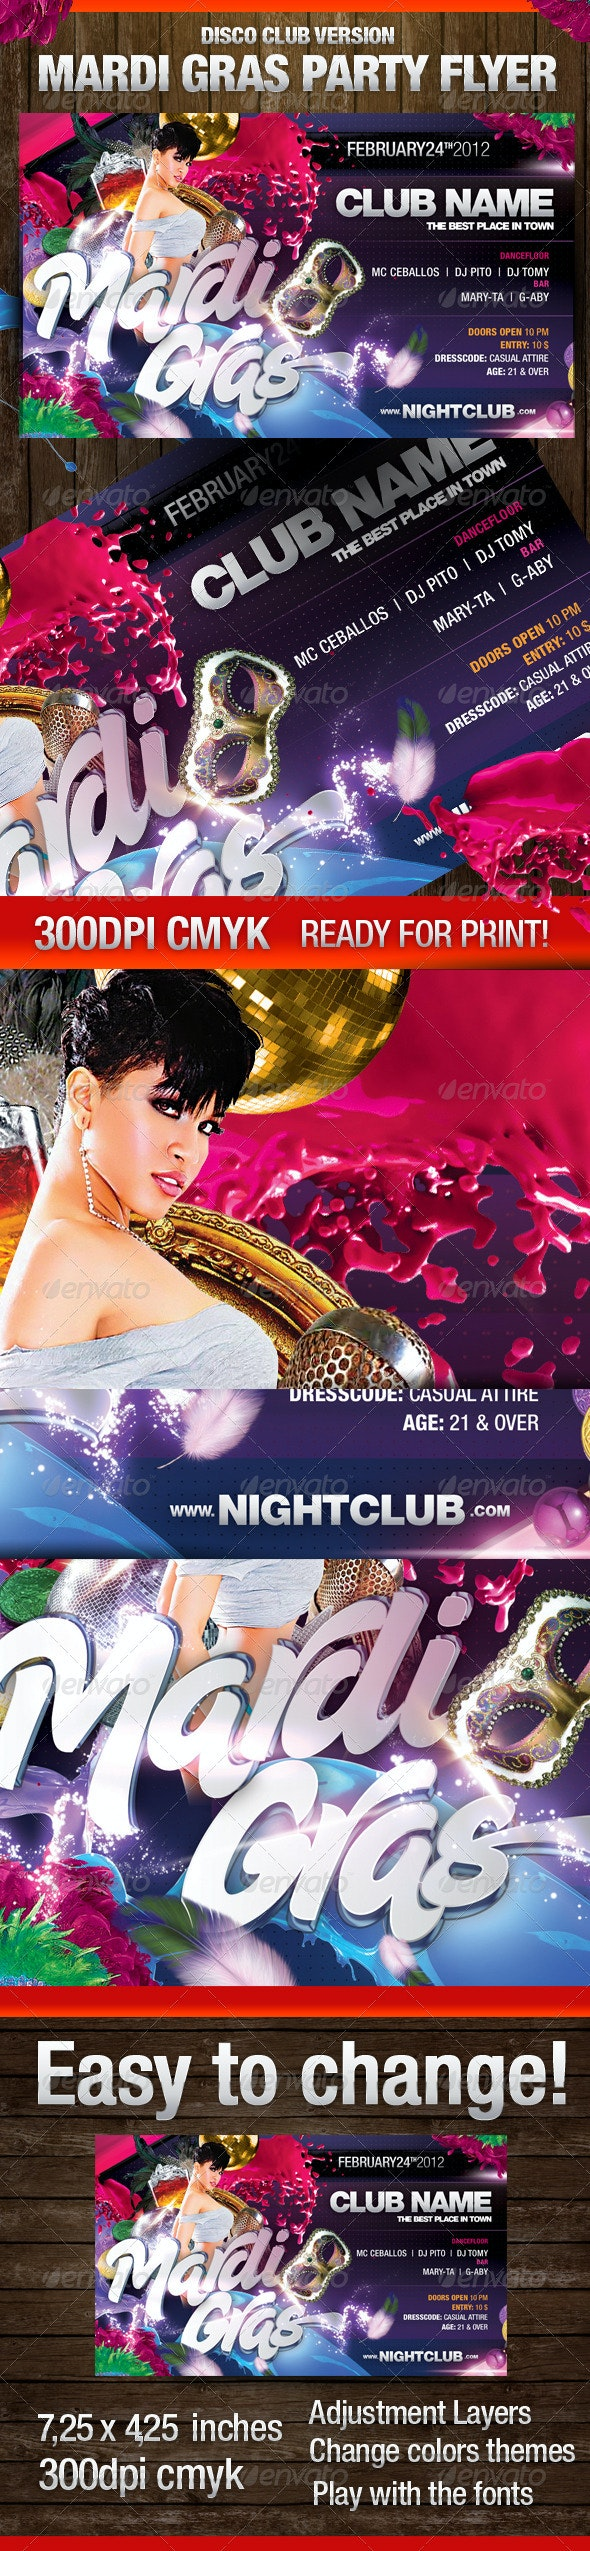 Mardi Gras Disco Club Version Flyer - Clubs & Parties Events